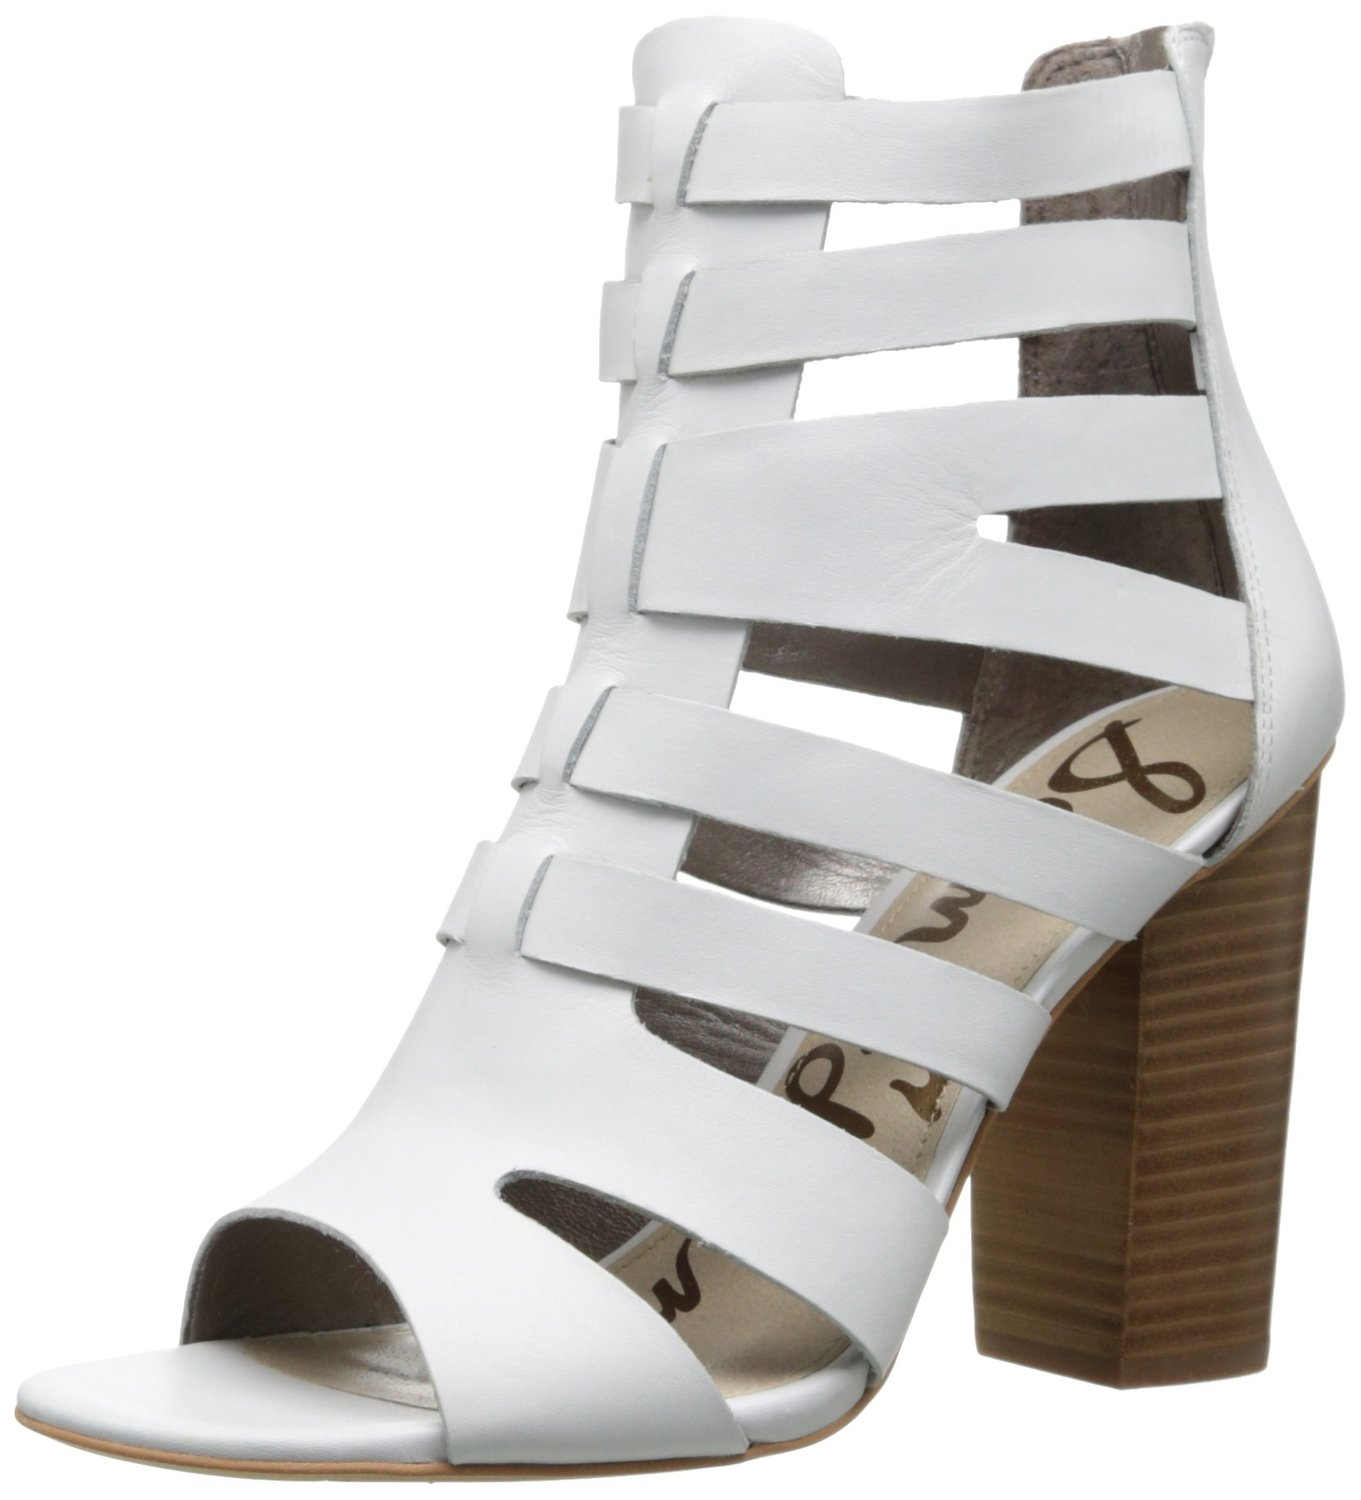 Amazon.com: Sam Edelman Women's Yazmine Sandal: Shoes